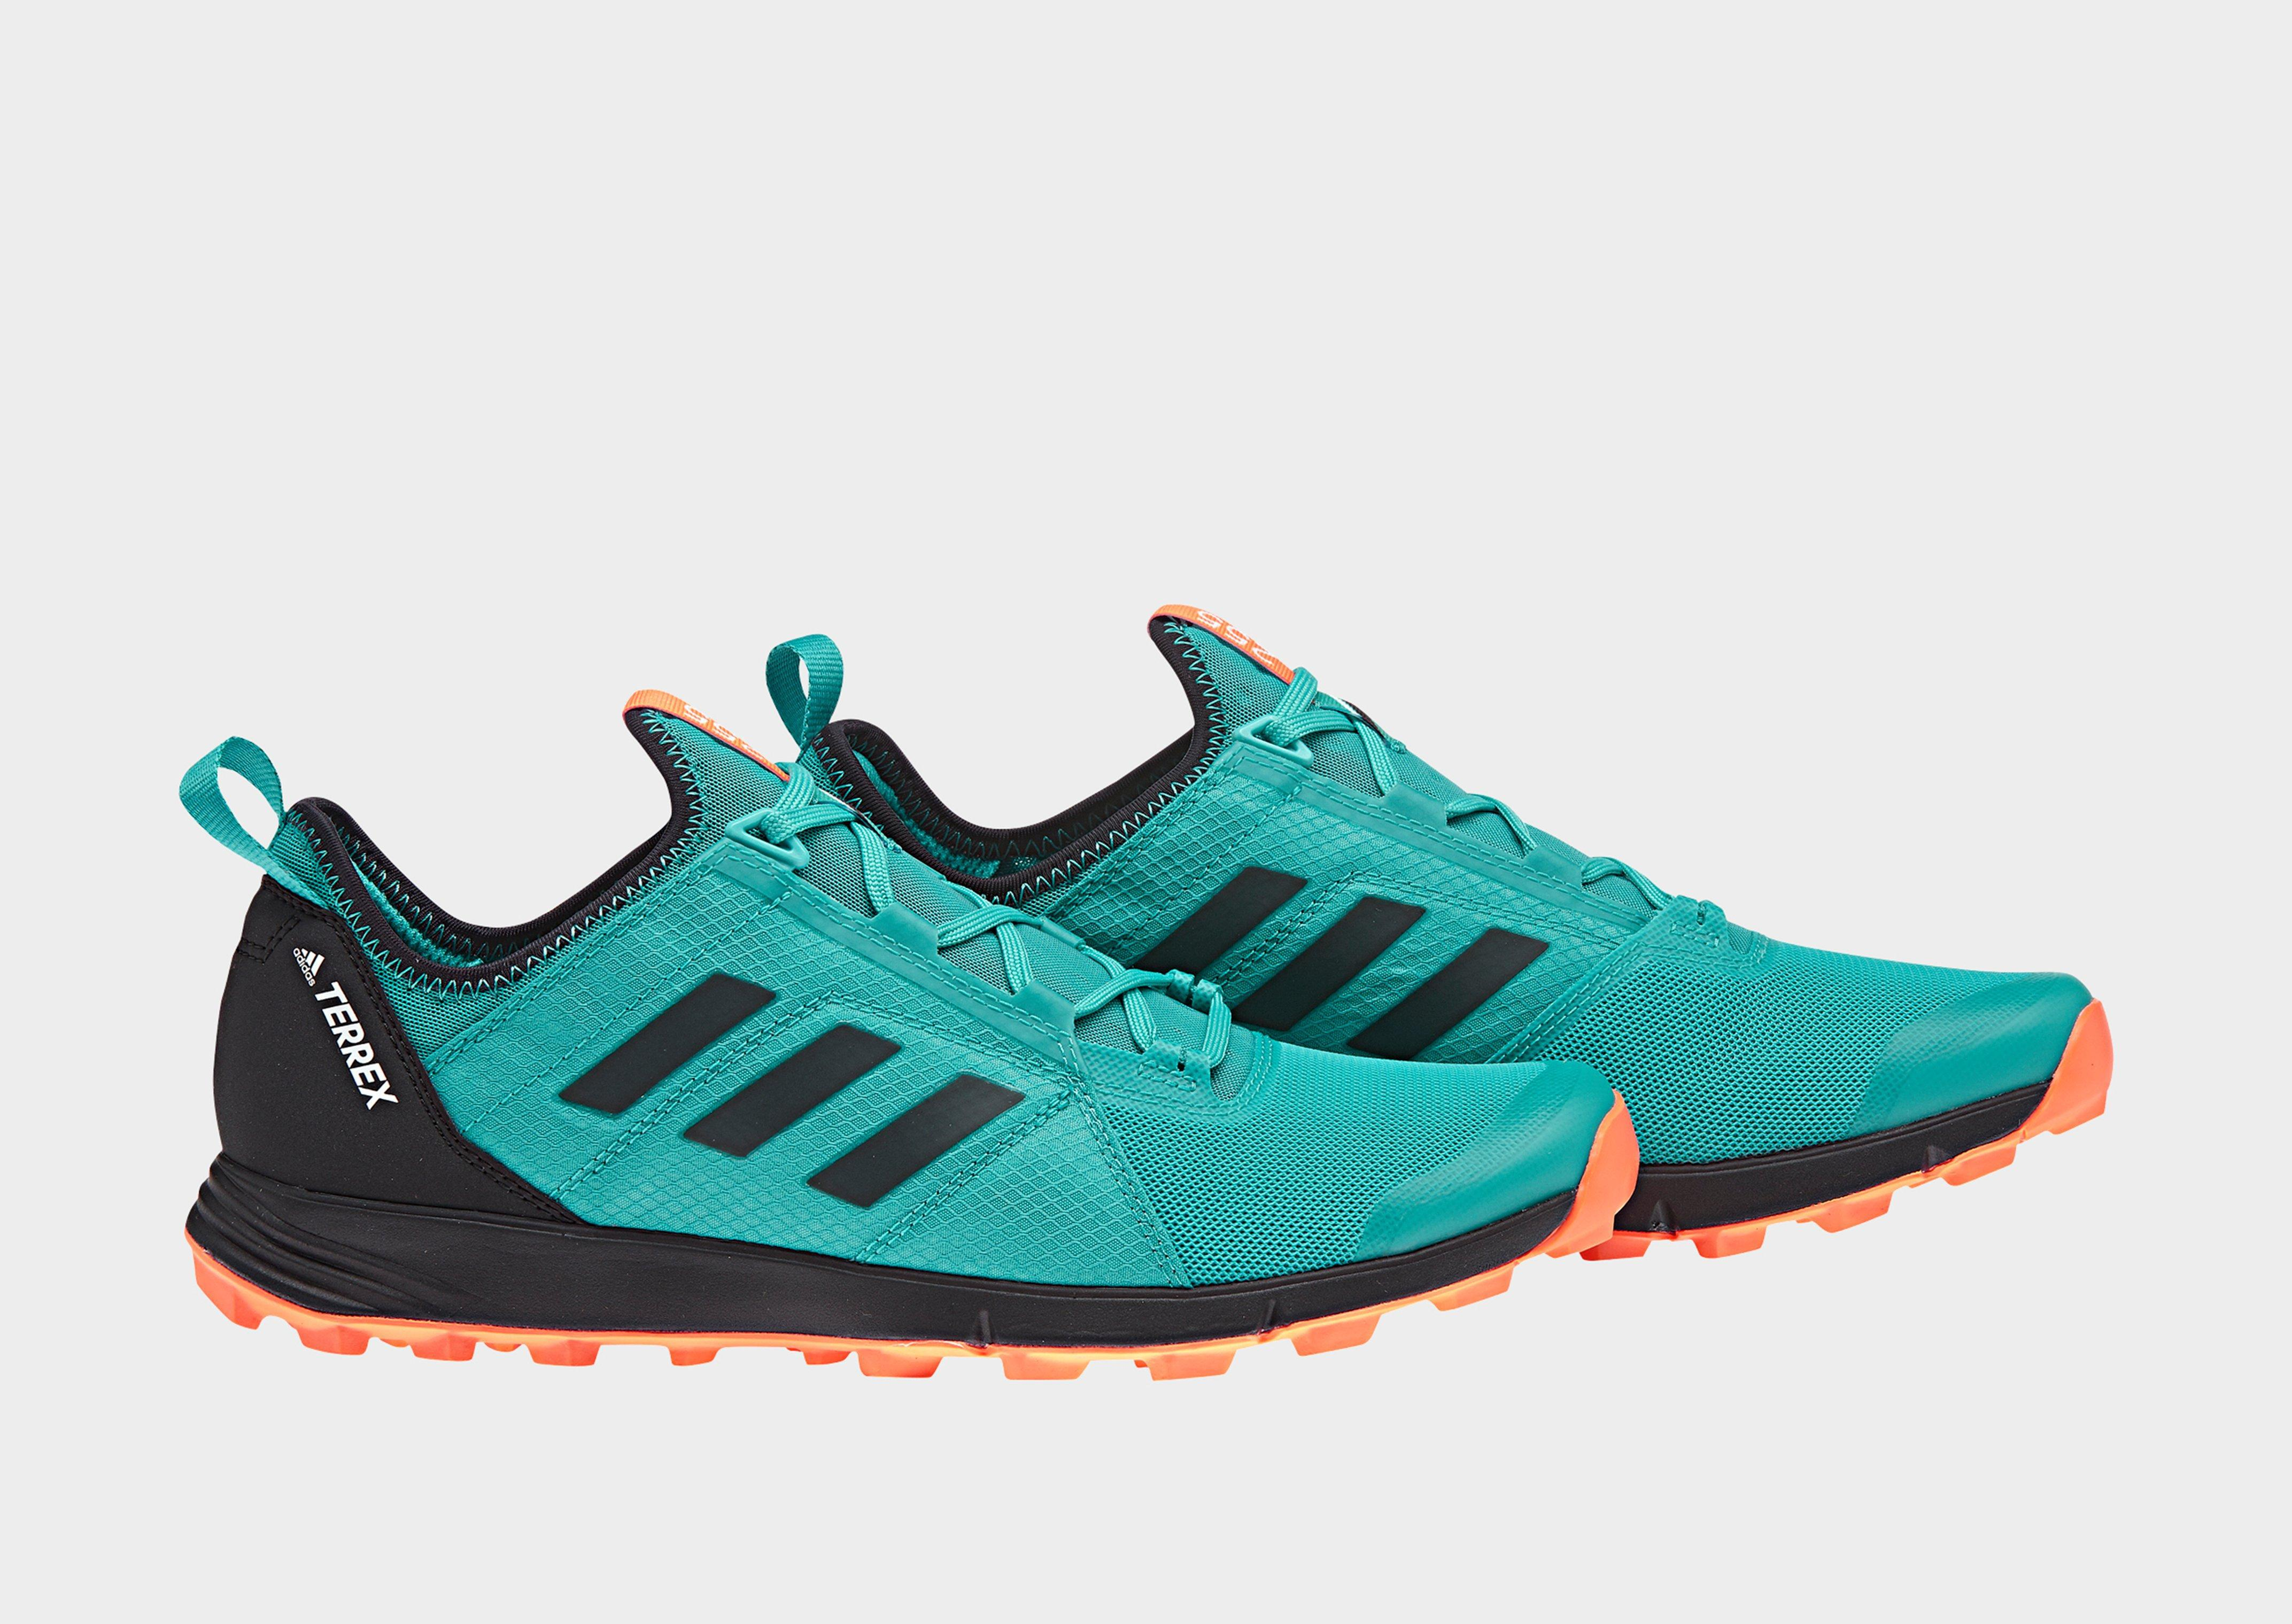 257714d599ca04 Lyst - adidas Terrex Agravic Speed Shoes in Blue for Men